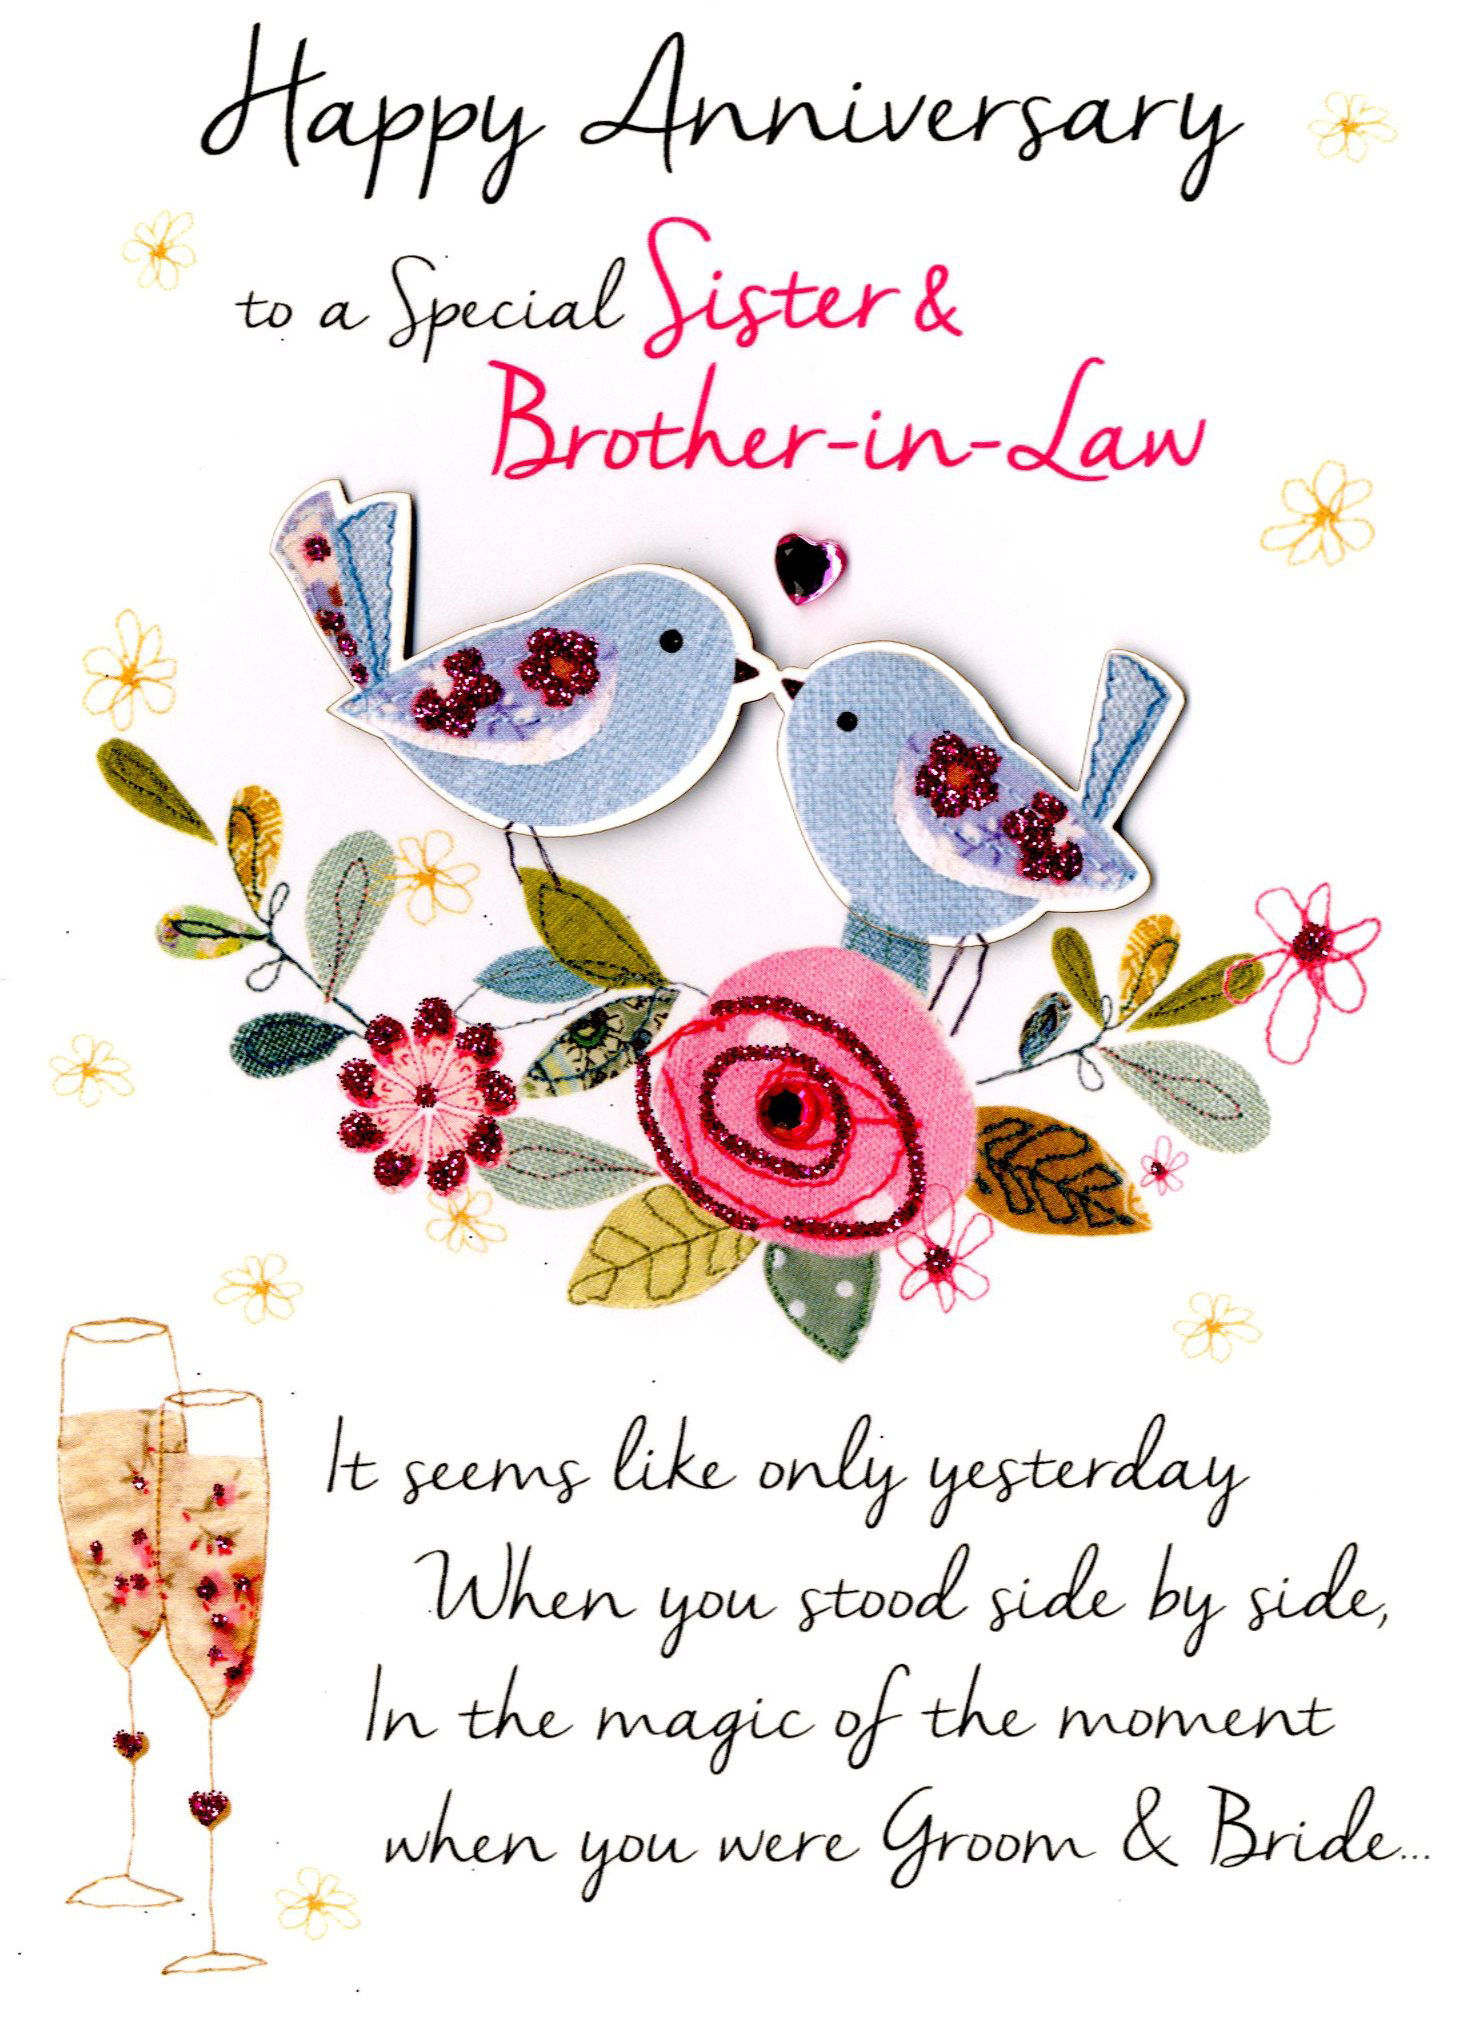 Sister & Brother-In-Law Anniversary Greeting Card | Cards | Love Kates